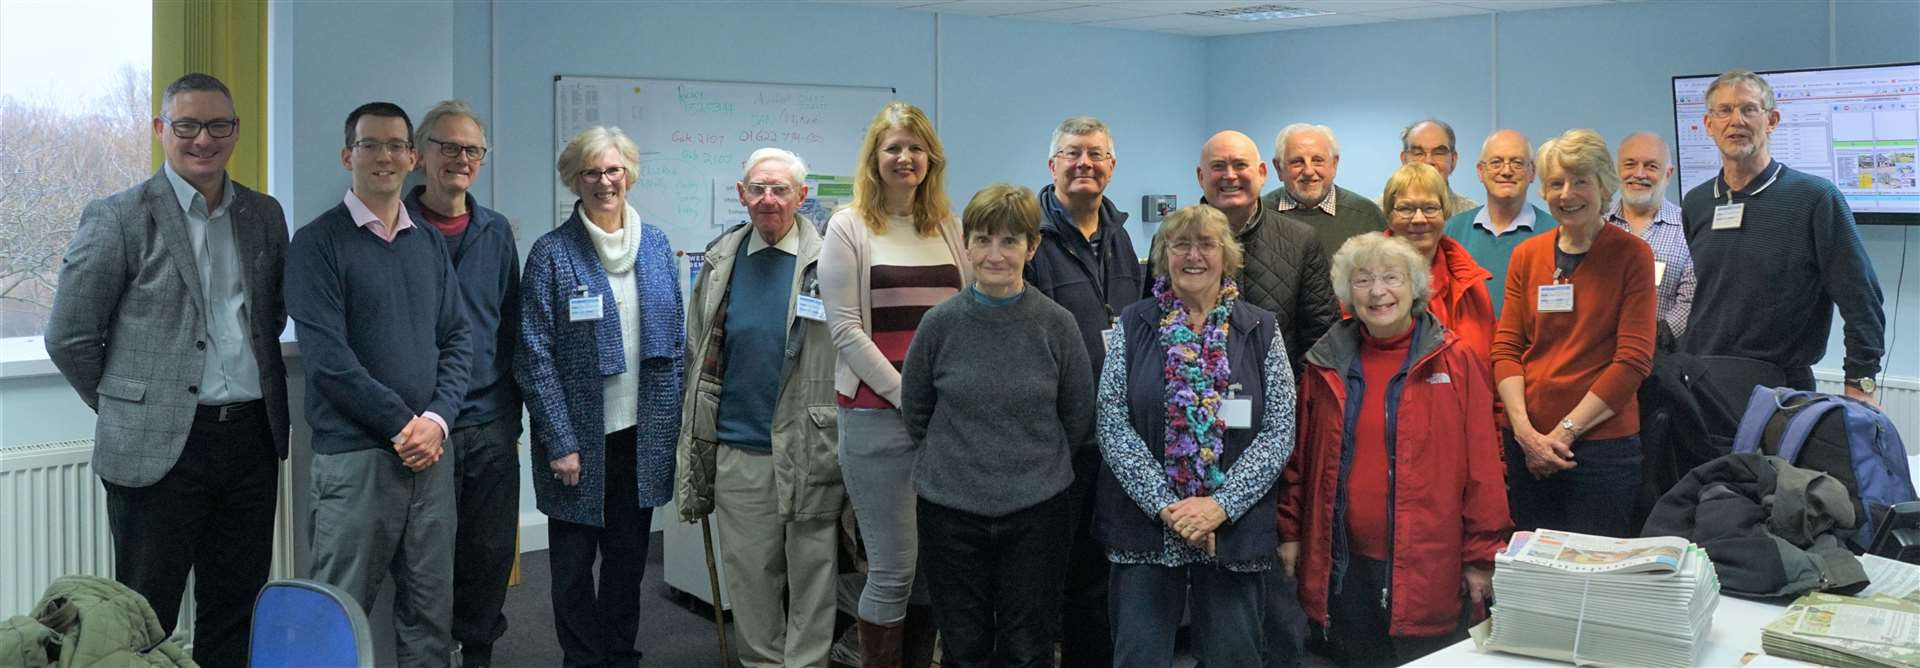 A group from the University of the Third Age in the Cambridge Independent newsroom with, far left, MD Ricky Allan and editor Paul Brackley (28358805)